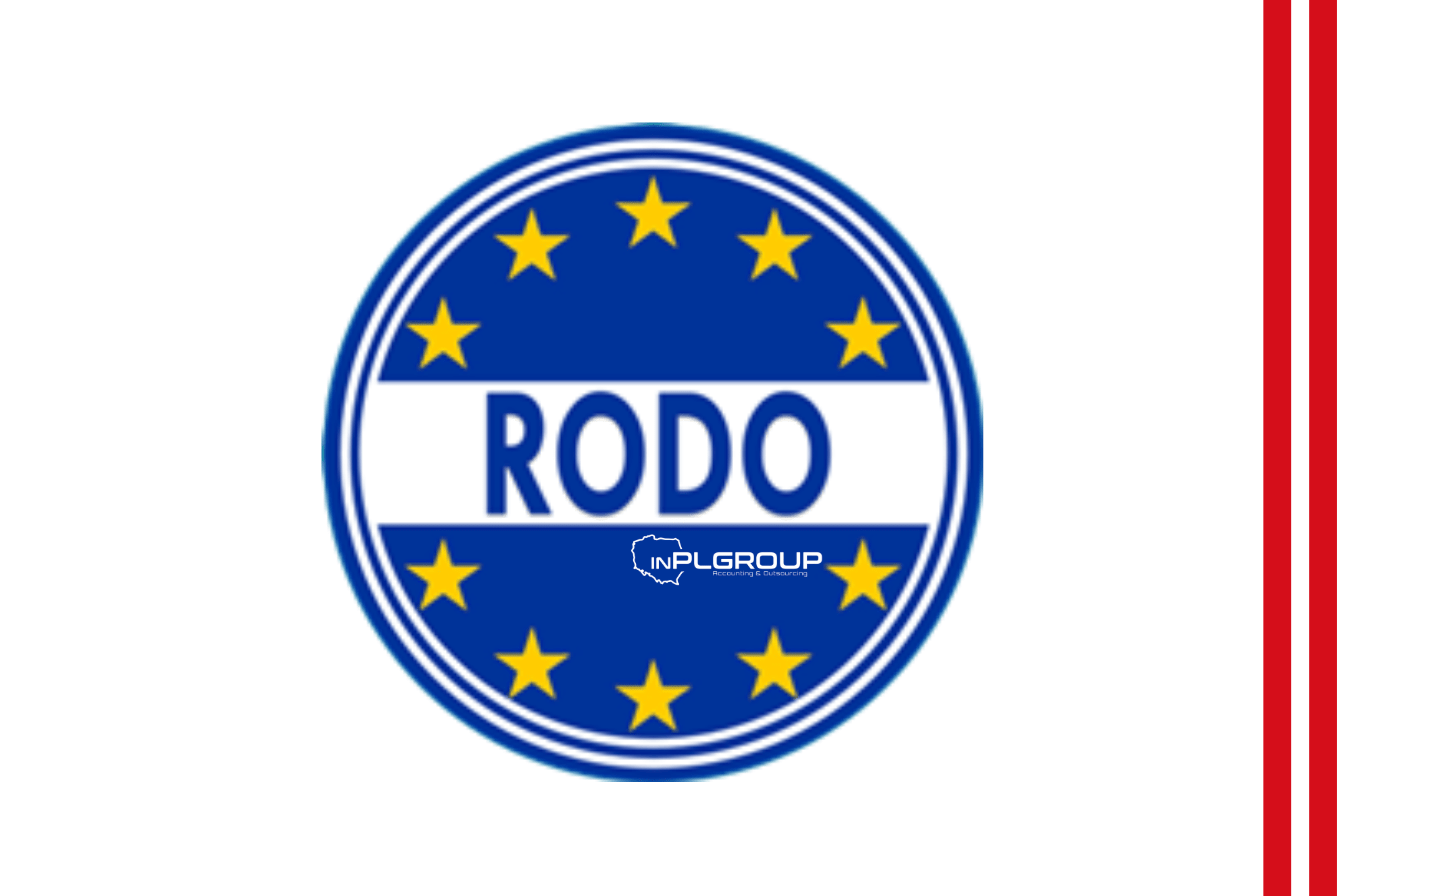 News in RODO 2019